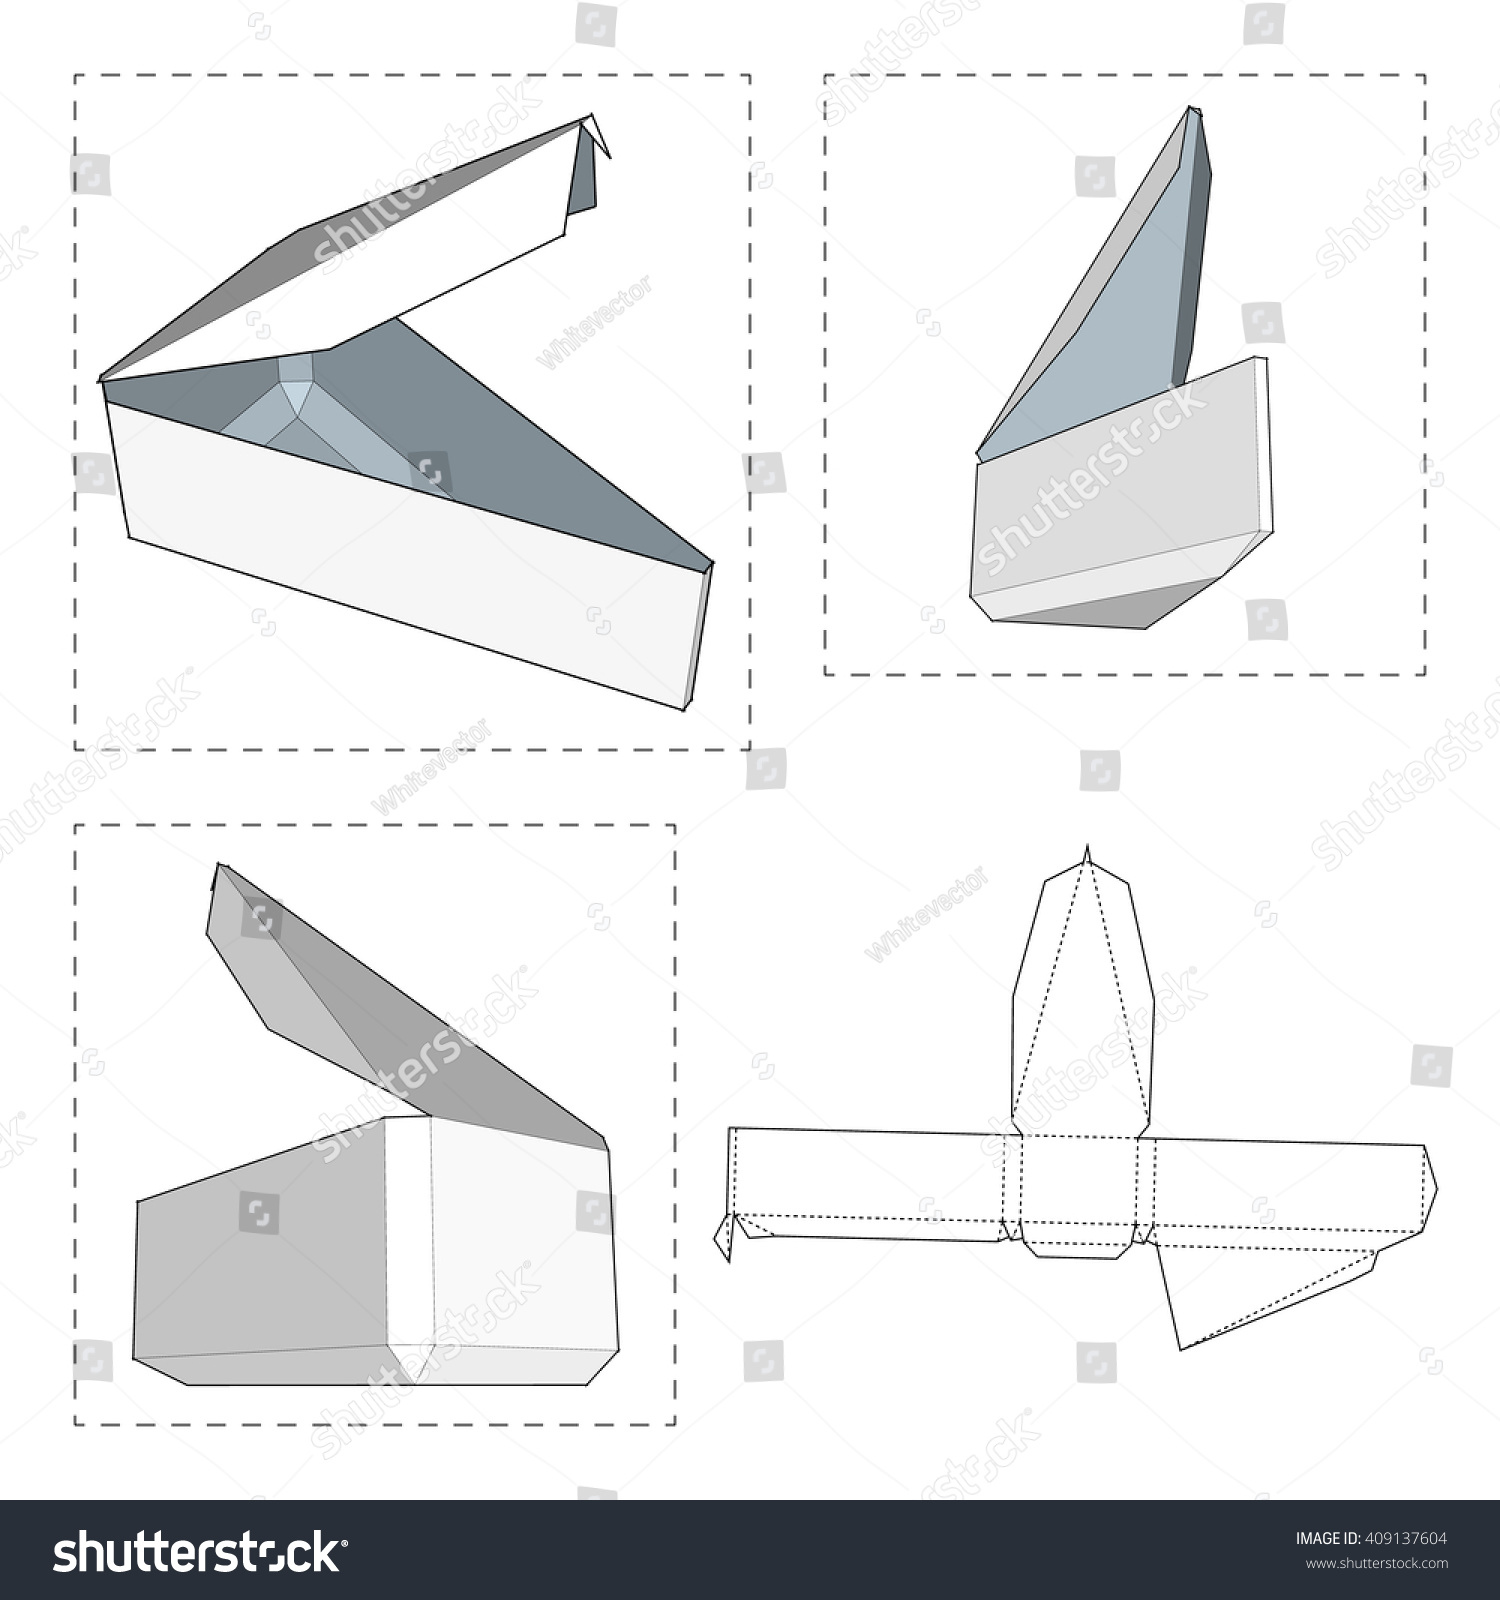 box die cut template packing box stock vector shutterstock box die cut template packing box for food gift or other products